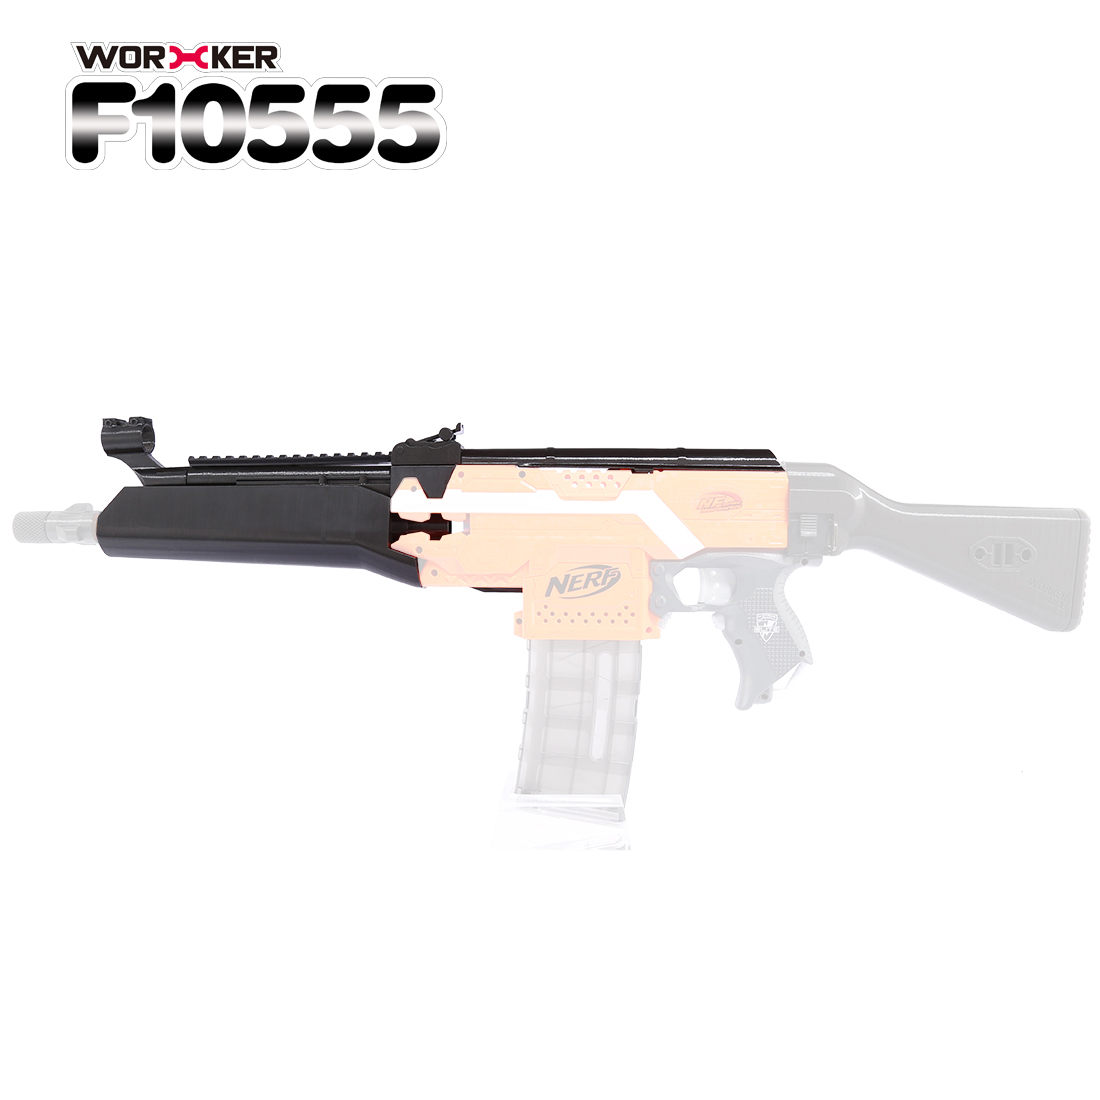 Worker f10556 3D Printing NO.105 Modified Kit for Nerf Stryfe(Type-B) - Black worker f10555 no 152 stf type b set professional toy gun accessories for nerf stryfe black